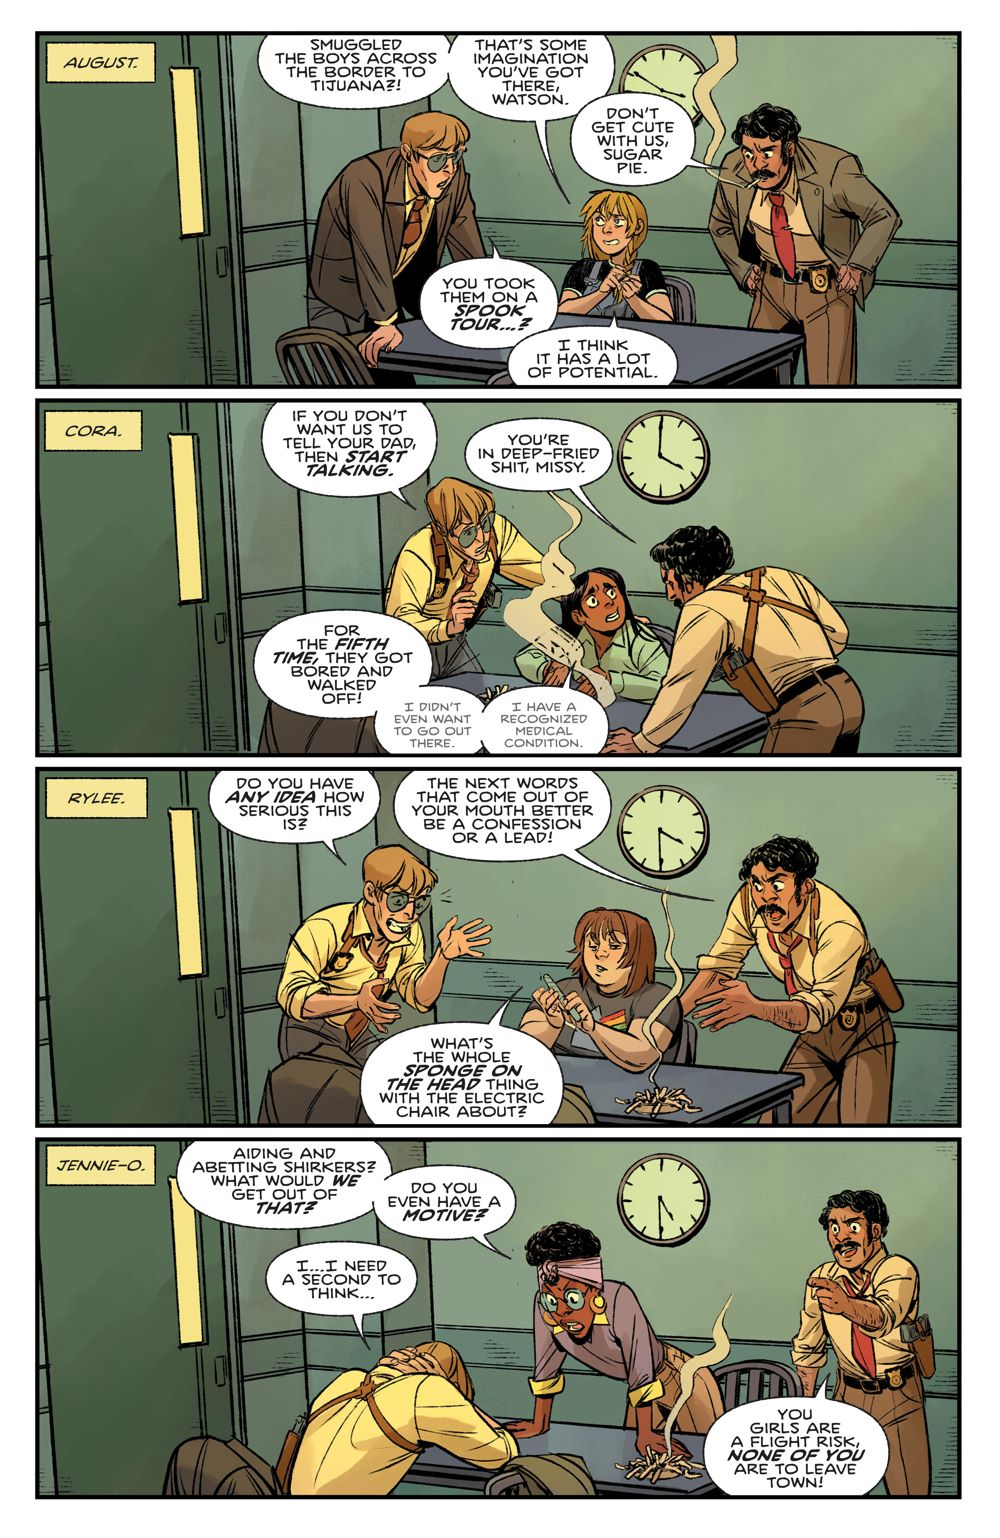 ProctorValleyRoad_002_PRESS_3 ComicList Previews: PROCTOR VALLEY ROAD #2 (OF 5)